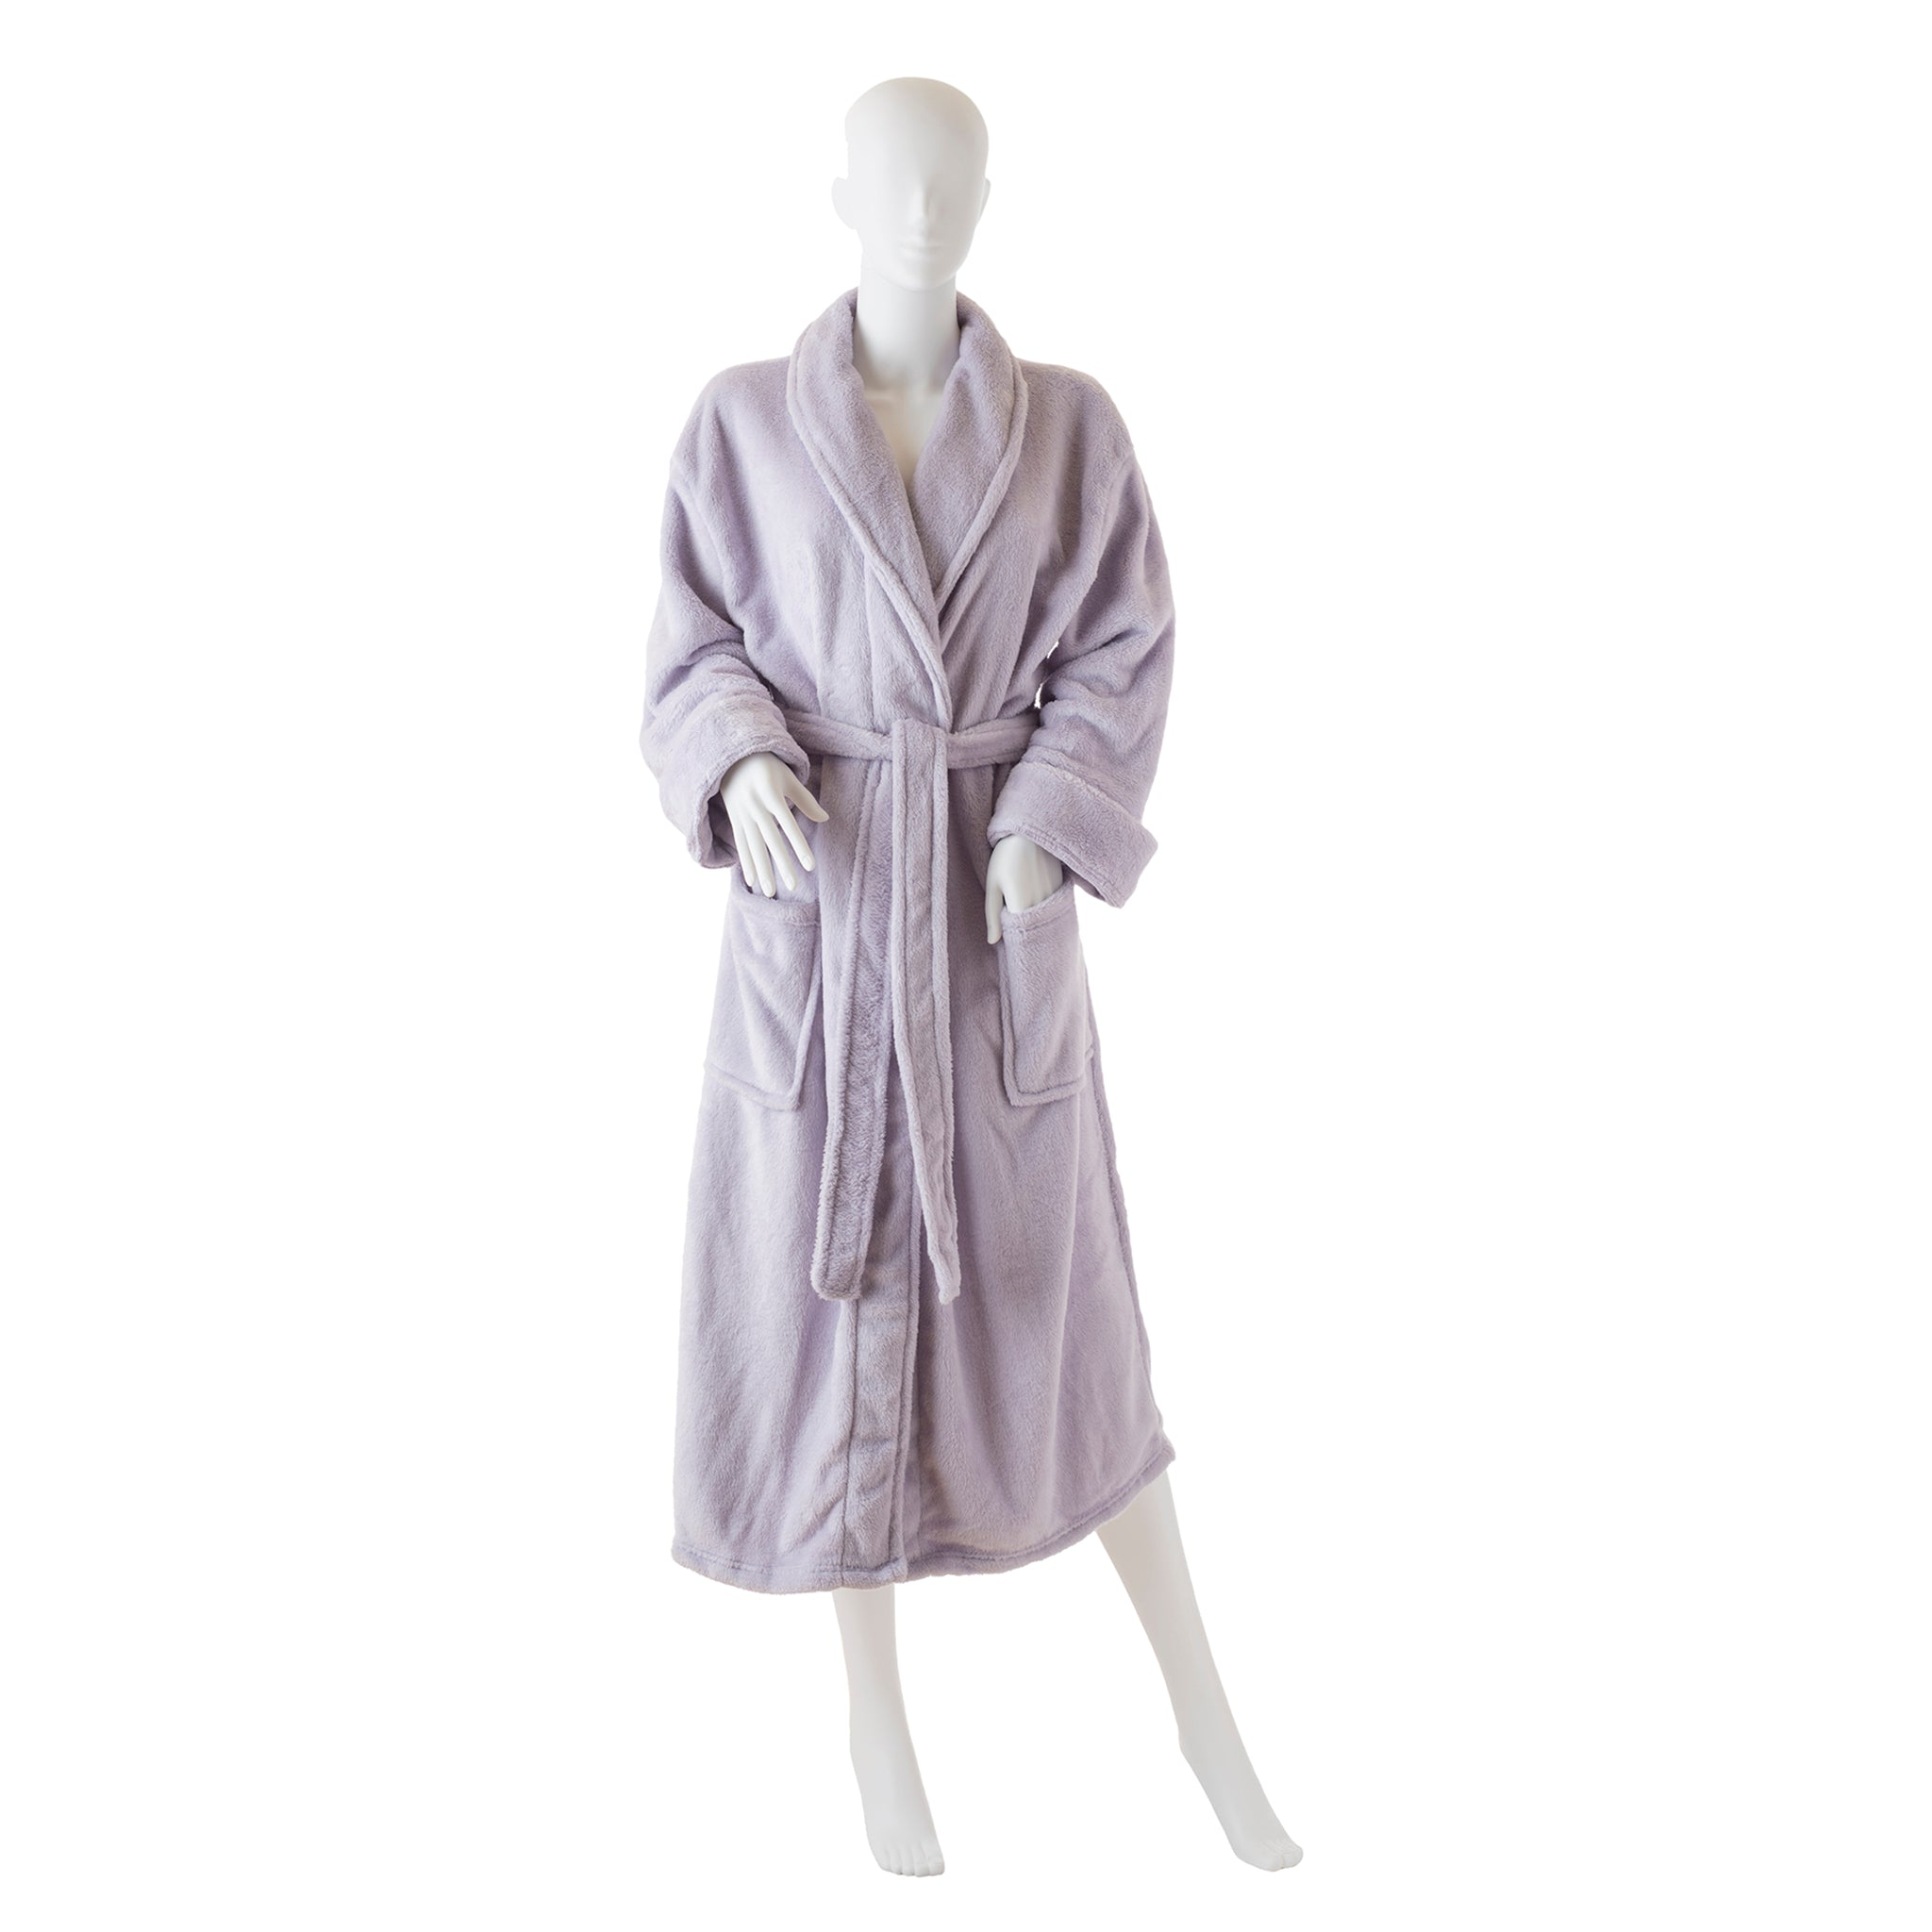 Ultra-Luxe Soft & Cozy Plush Shawl Robe in Lilac